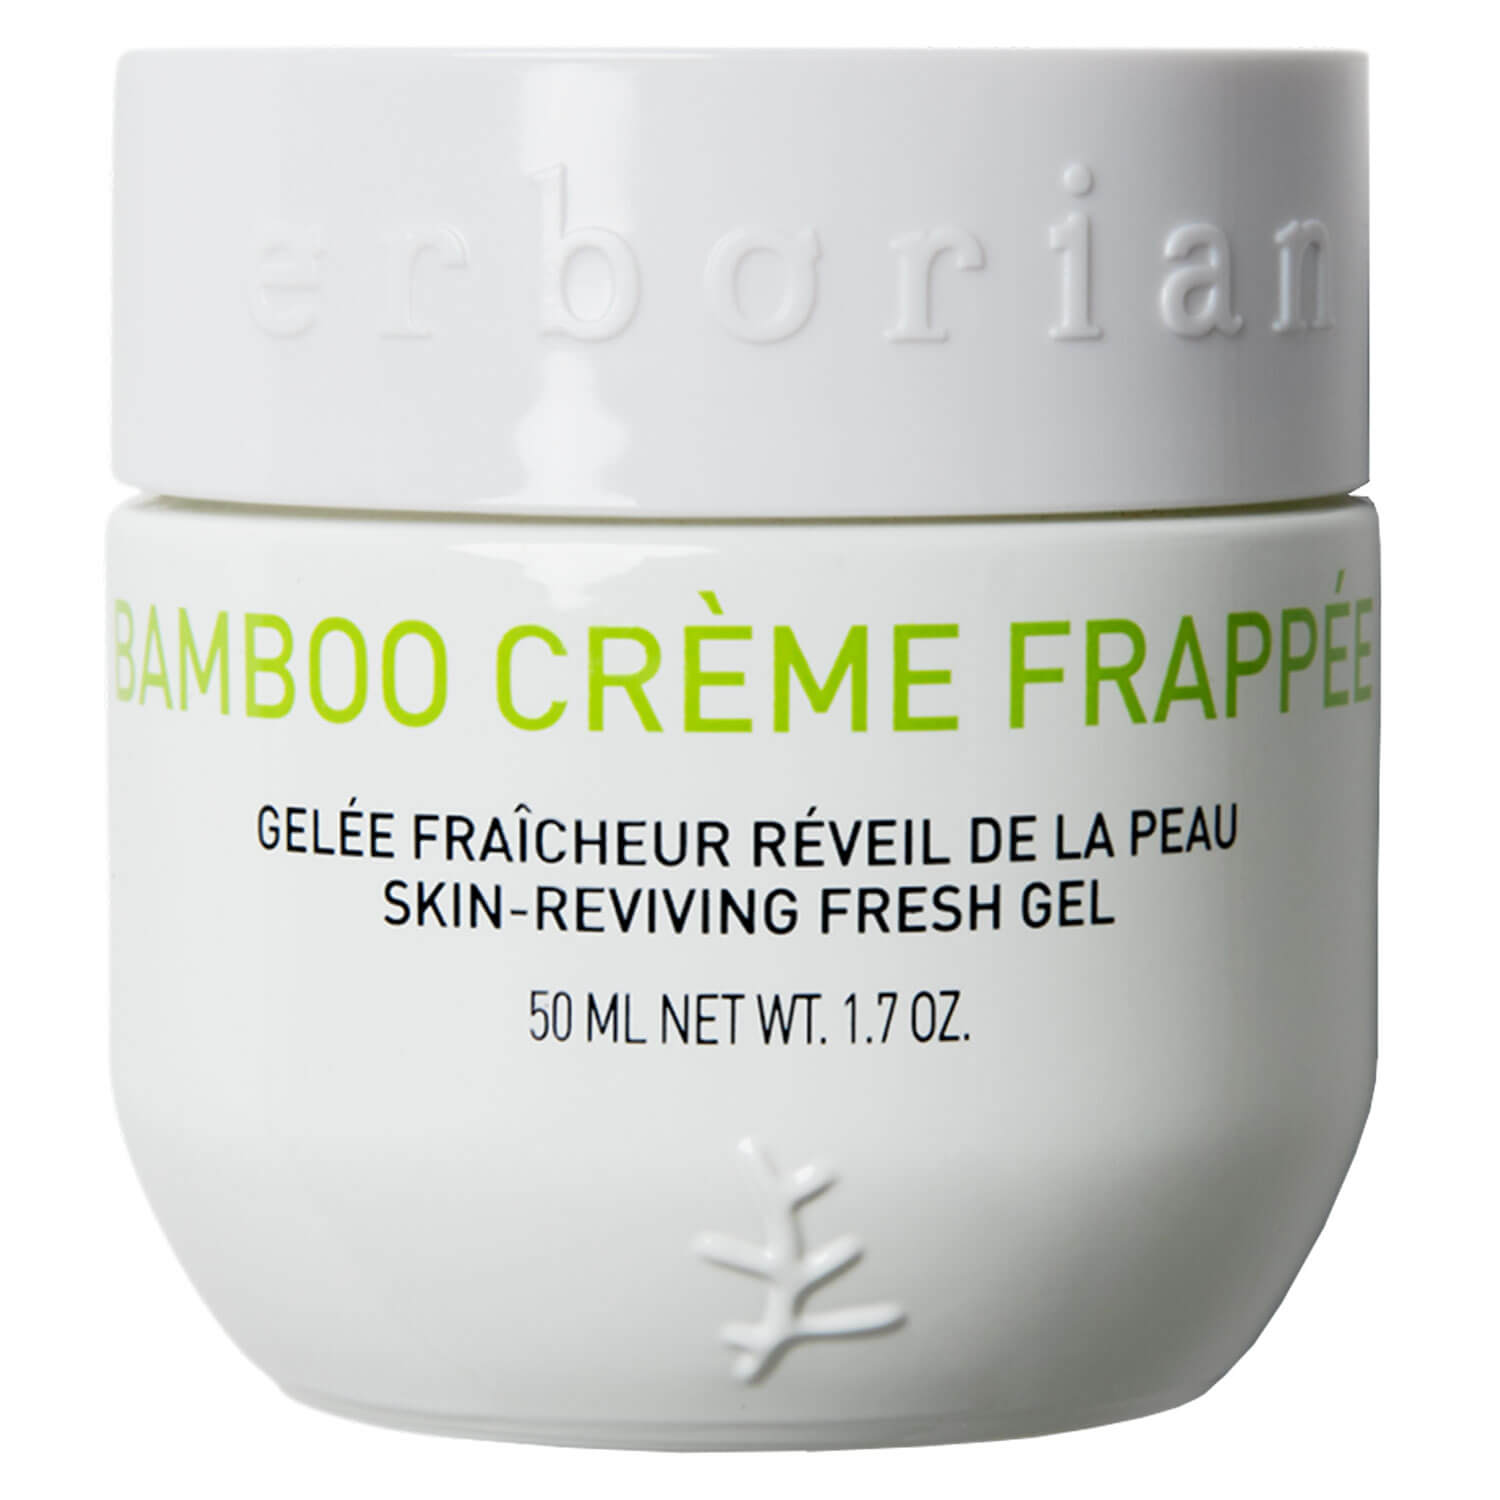 Bamboo - Crème Frappée - 50ml